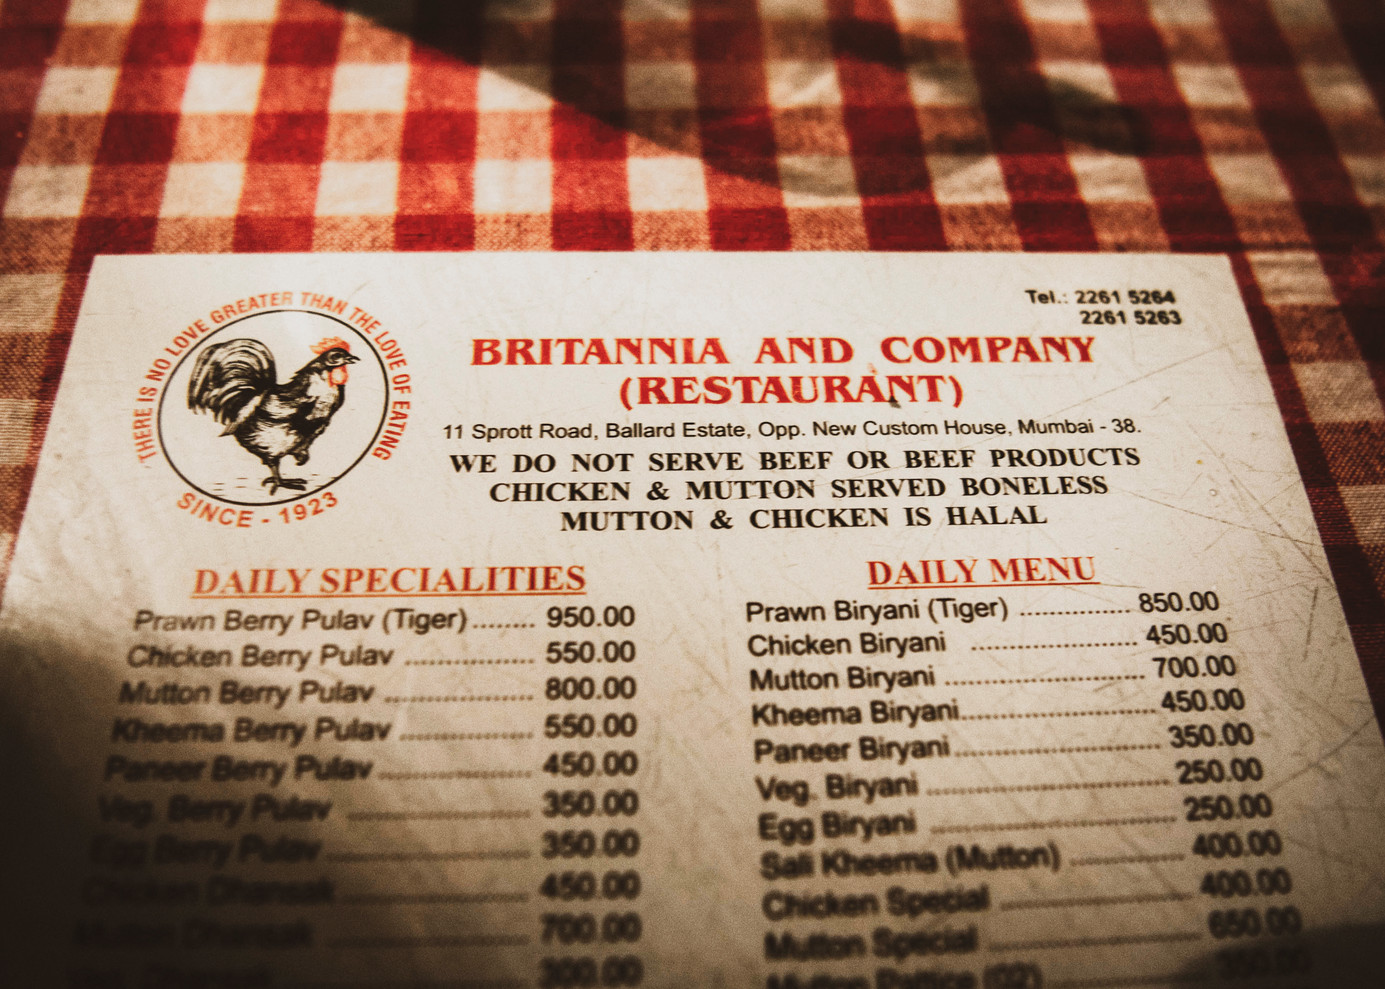 Tucked between the chequered table cloth and glass panes, the menu card of Britannia & Co. The food items are inclusive, keeping in mind the wide range of customers in a multicultural city such as Mumbai and their diverse eating habits. For example, Britannia's menu makes it clear that they do not serve beef or beef products and all of their meat is halal.